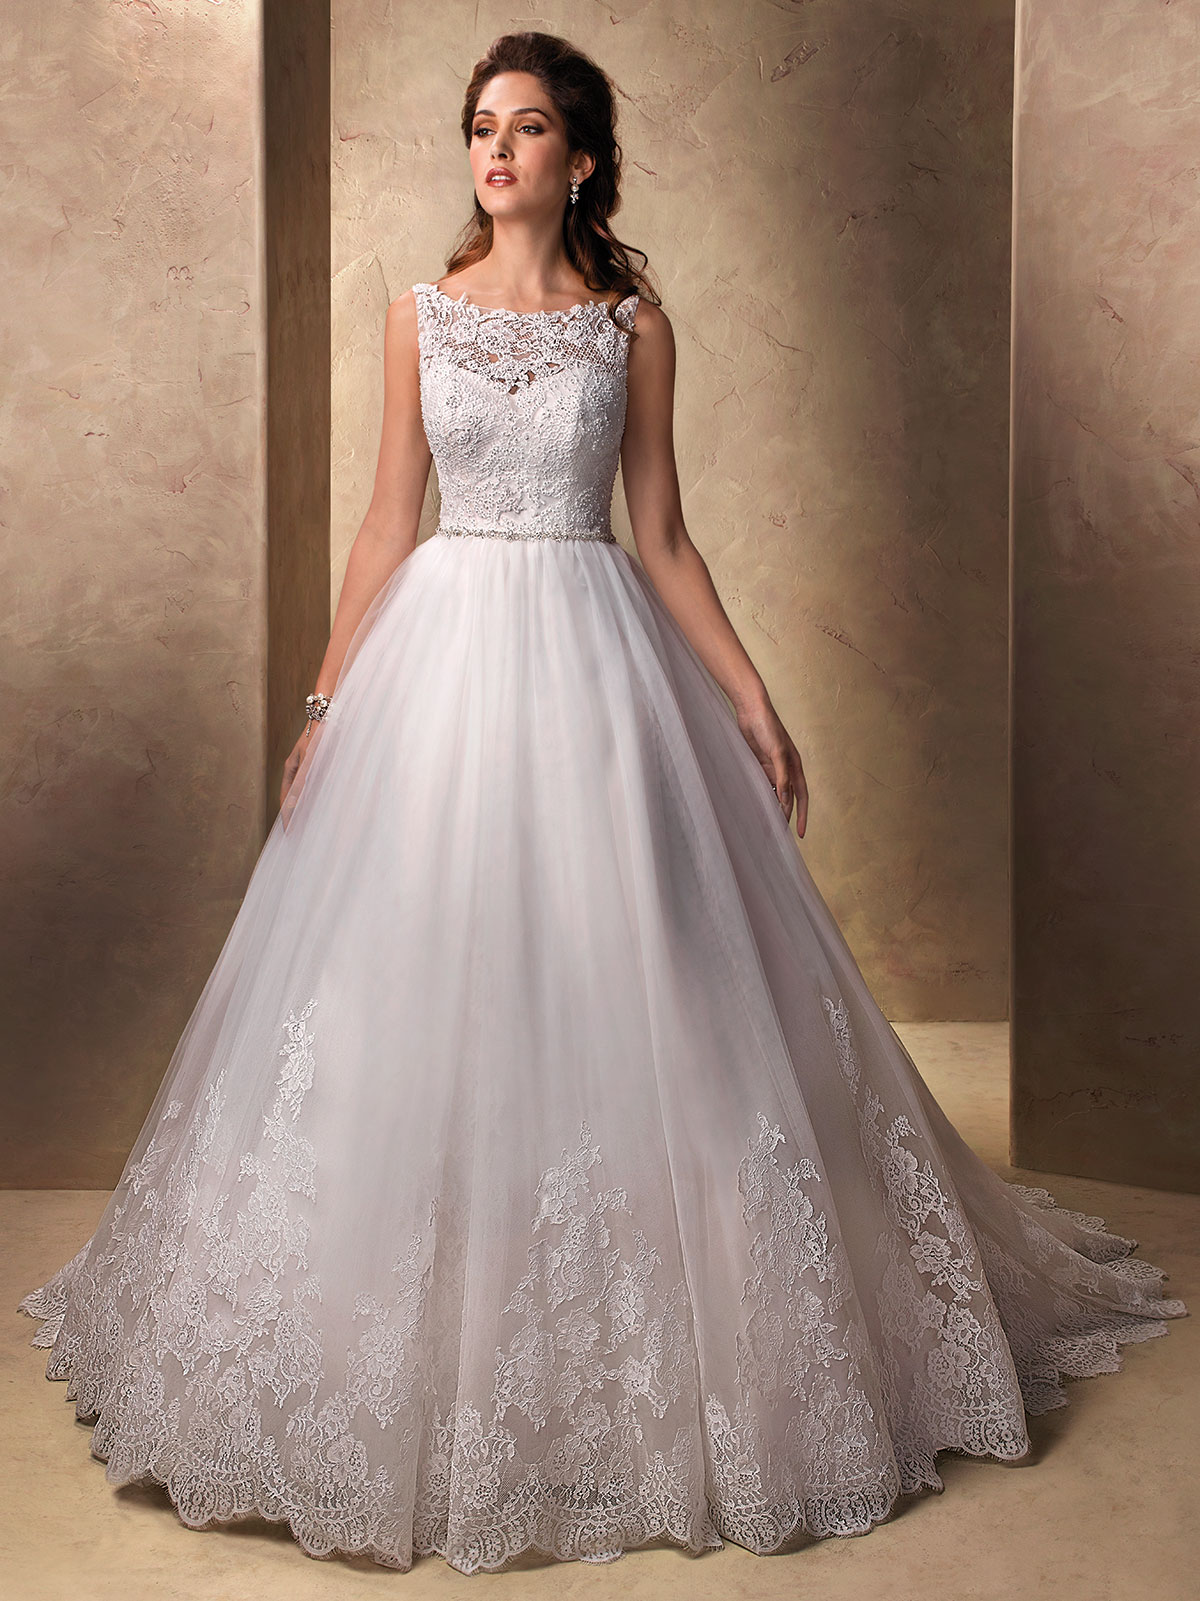 Wedding Dresses With Illusion Bodice : Sheer bodice ball gown wedding dress viewing gallery